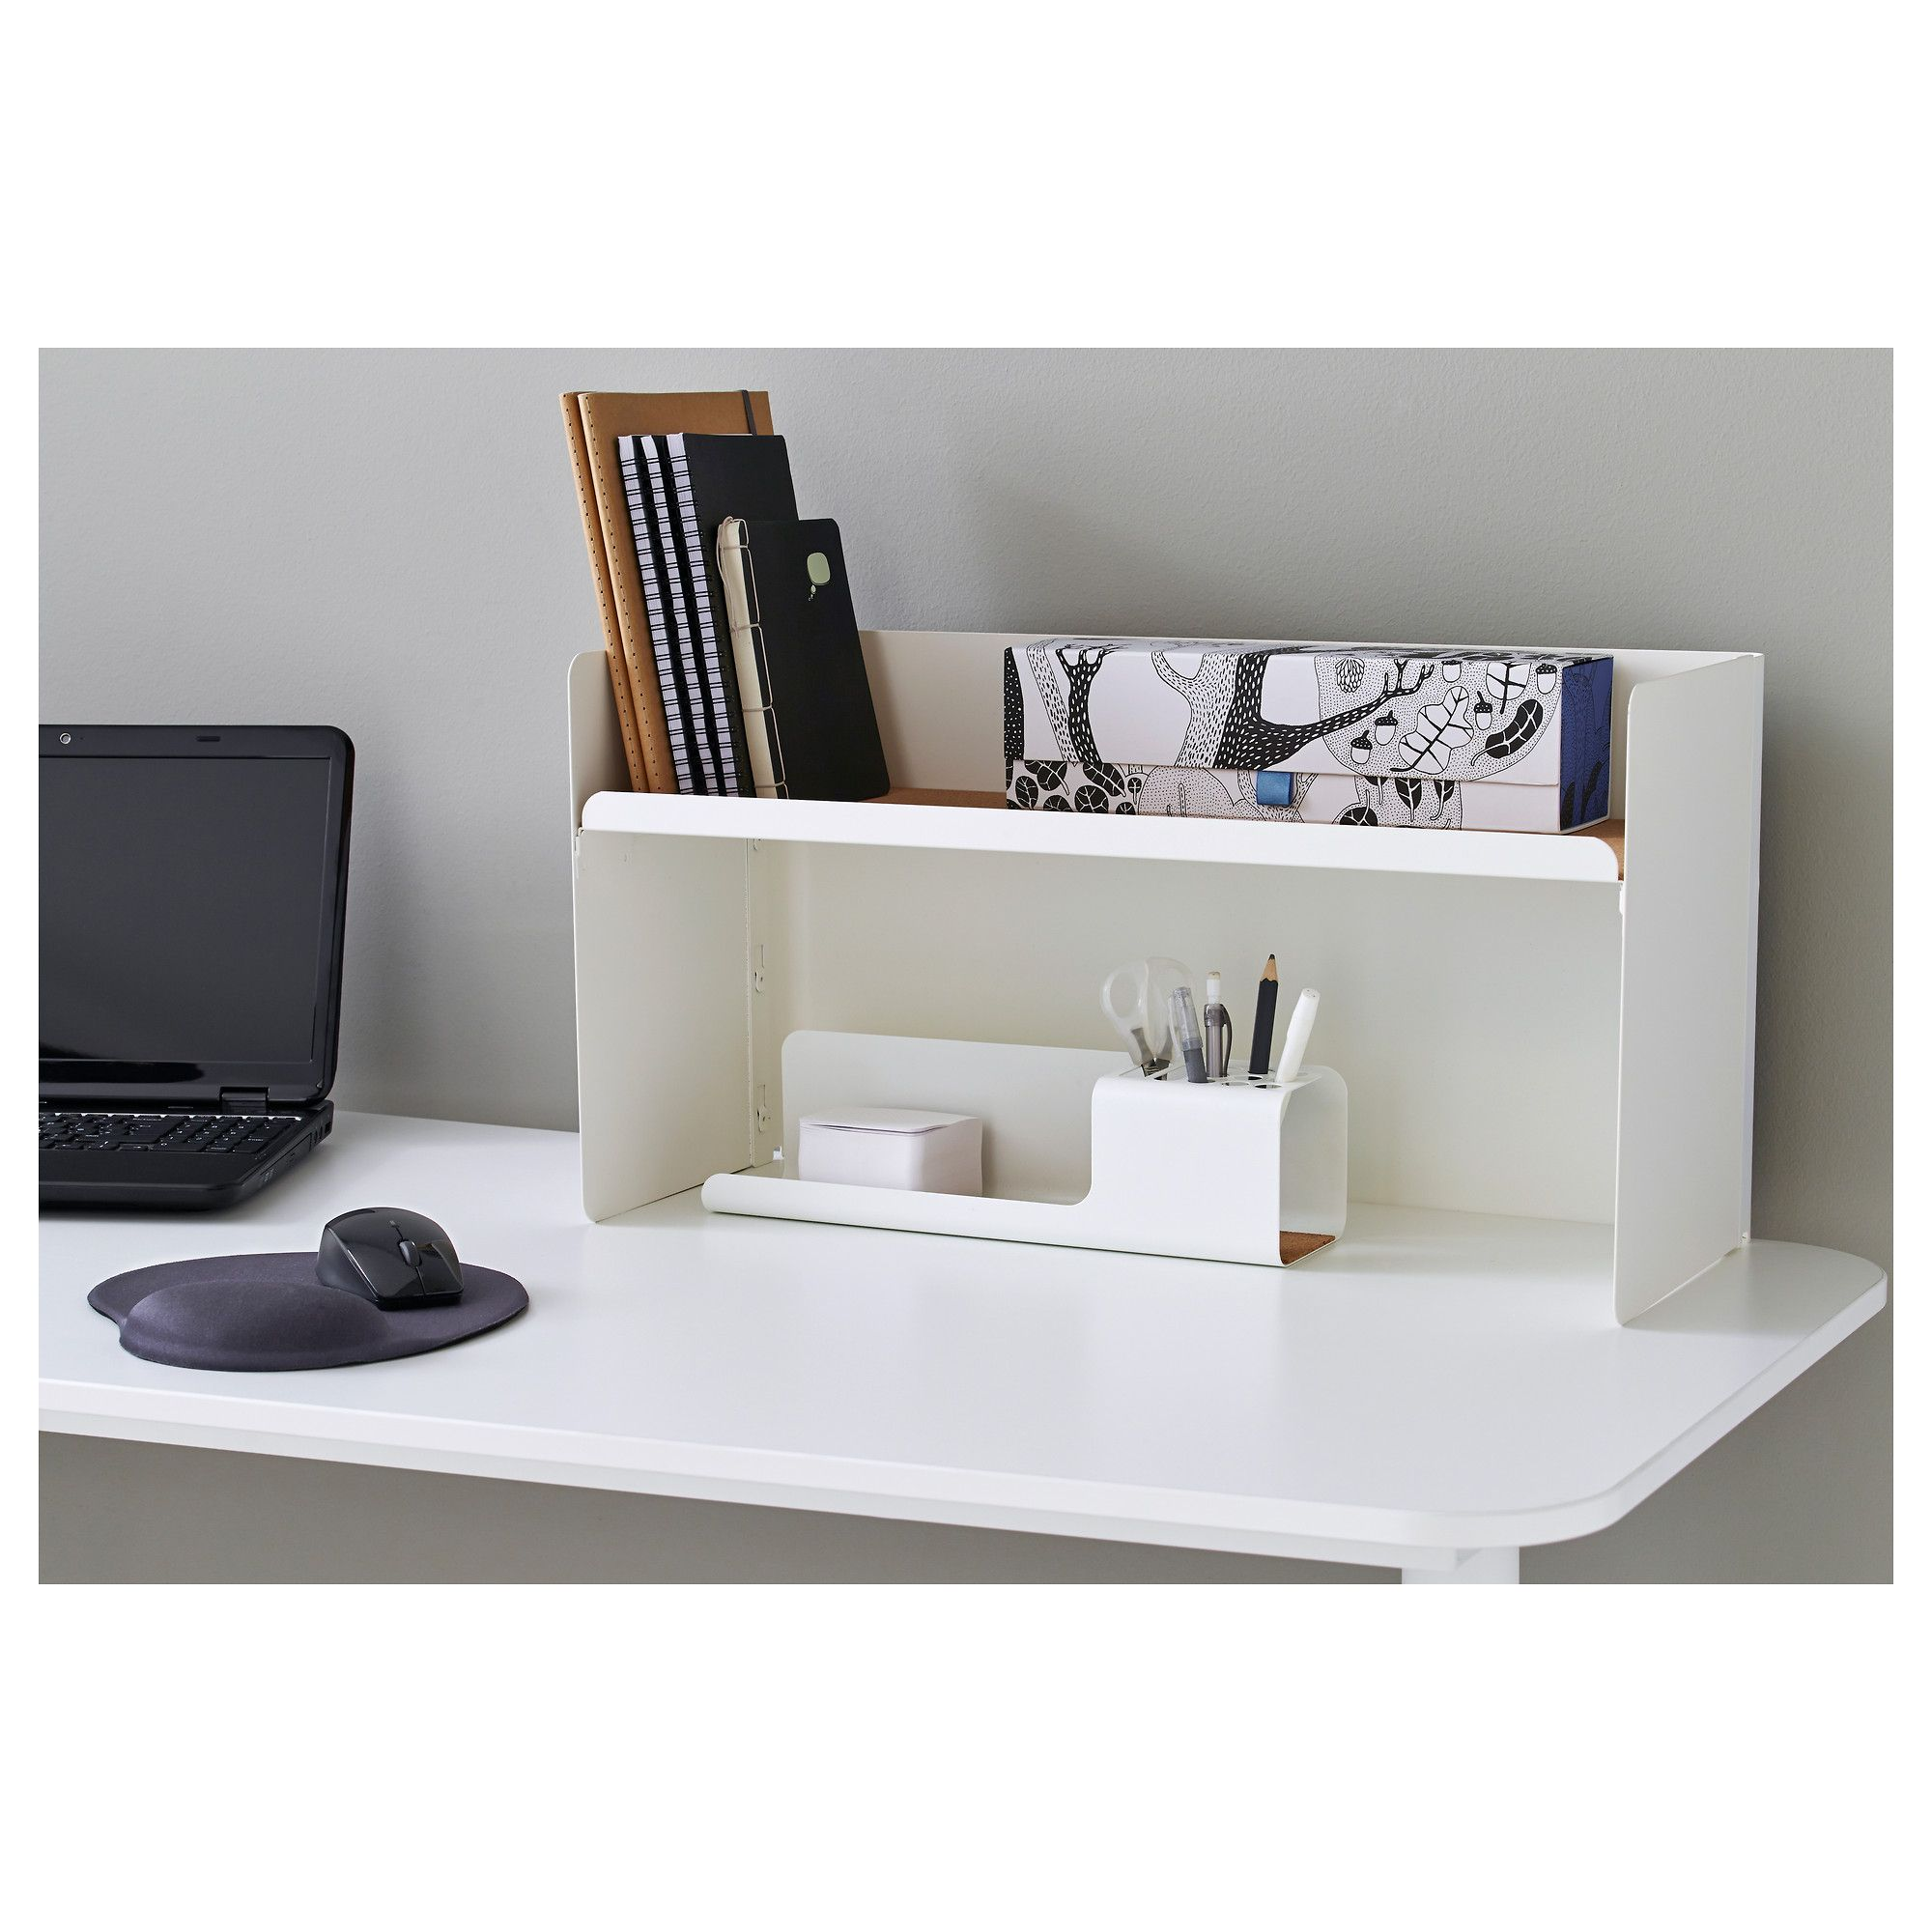 Home Design Ikea Bekant Desk Top Shelf Your Workspace Pinterest Ikea Desktop Shelf Ikea Desktop Shelf Ikea Office Furniture Ikea Finds